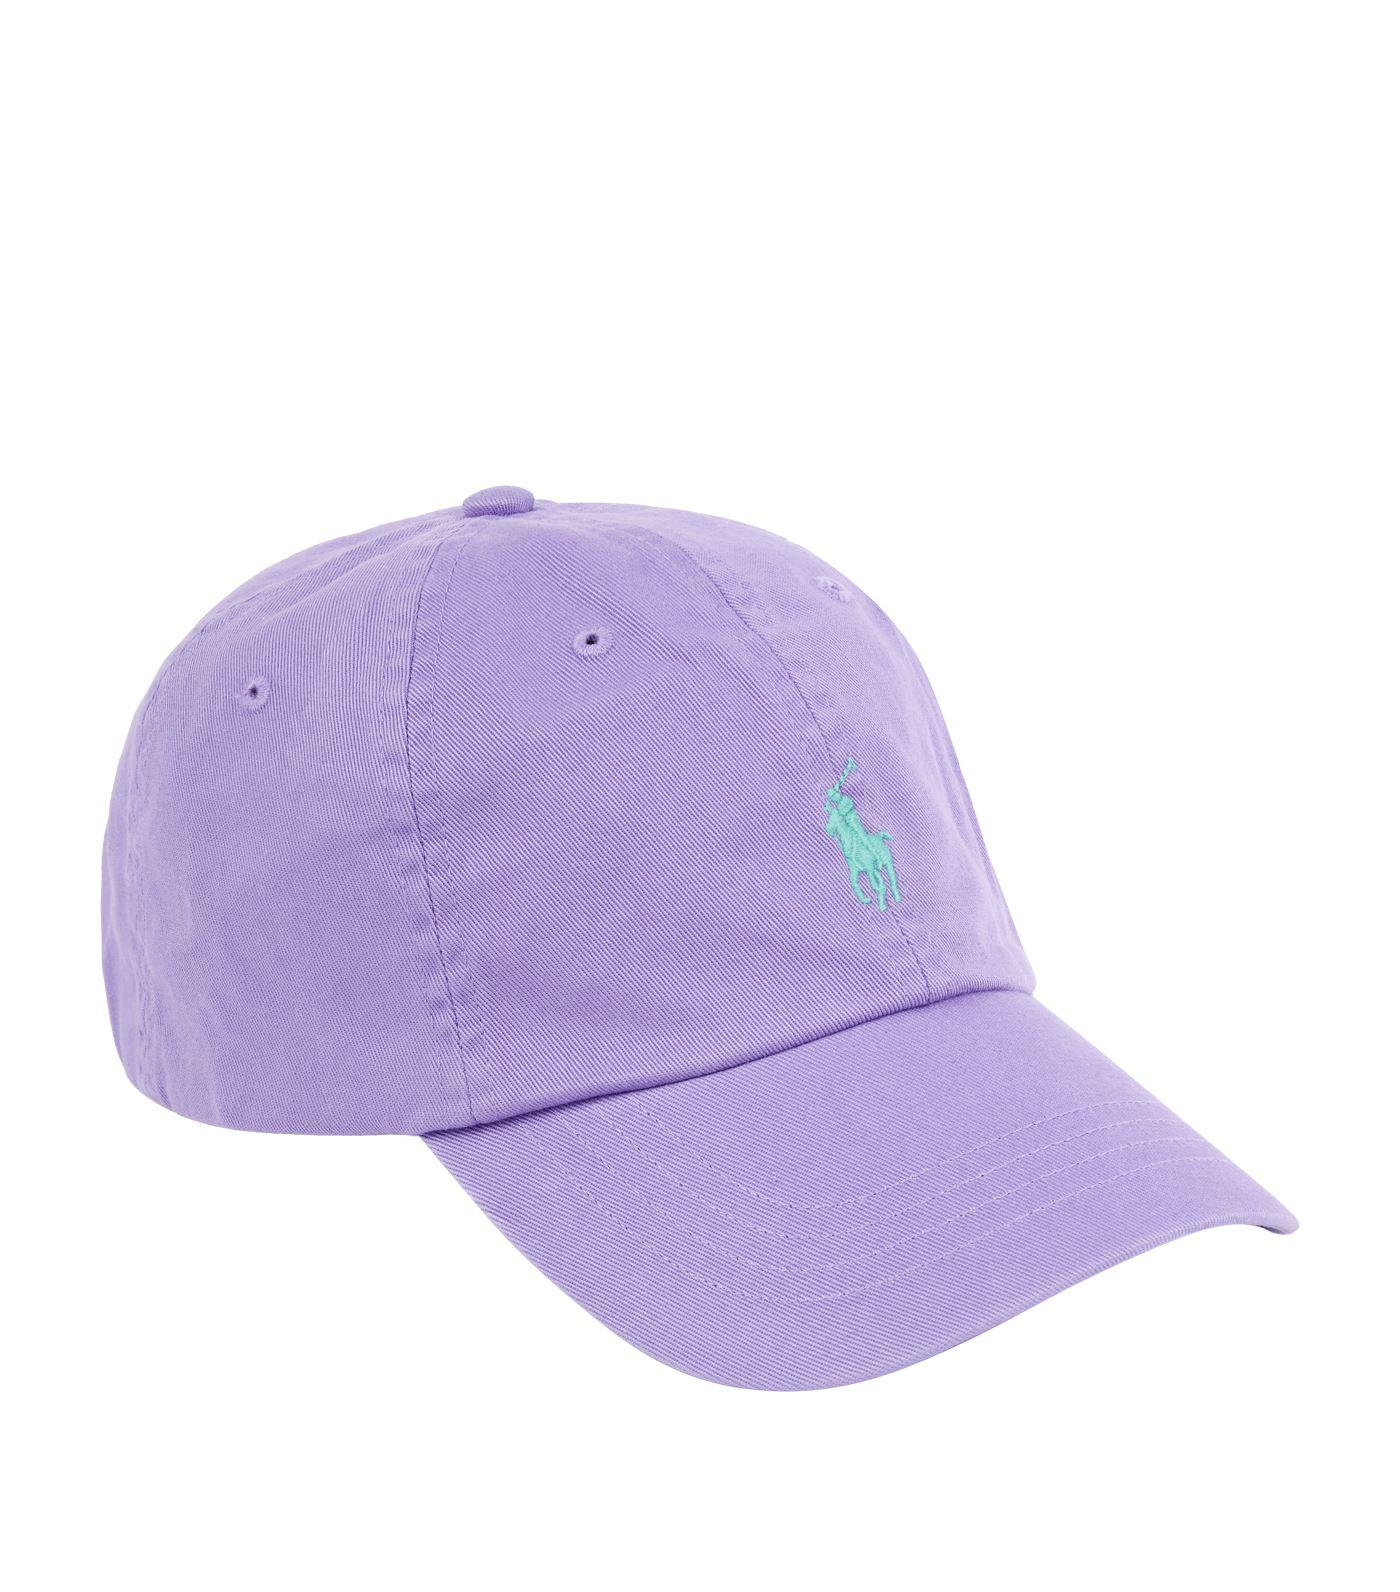 5e42c25683c Ralph Lauren Cotton Baseball Cap in Purple for Men - Lyst